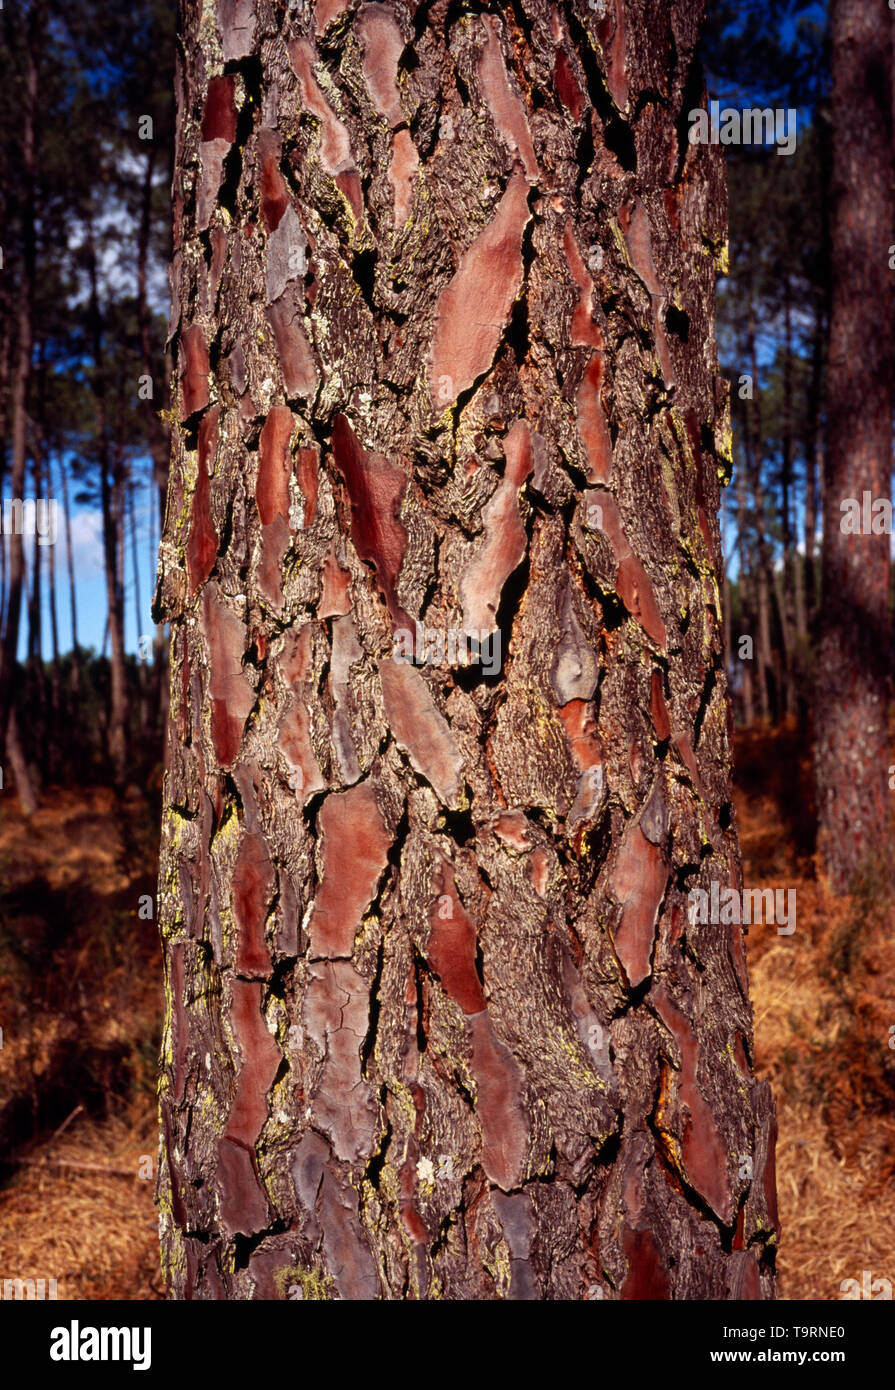 France, Natural History, Close up shot of the colours and bark on the tree trunk of a Maritime Pine Tree (Pinus Pinaster) South West Forests of Aquitaine. - Stock Image